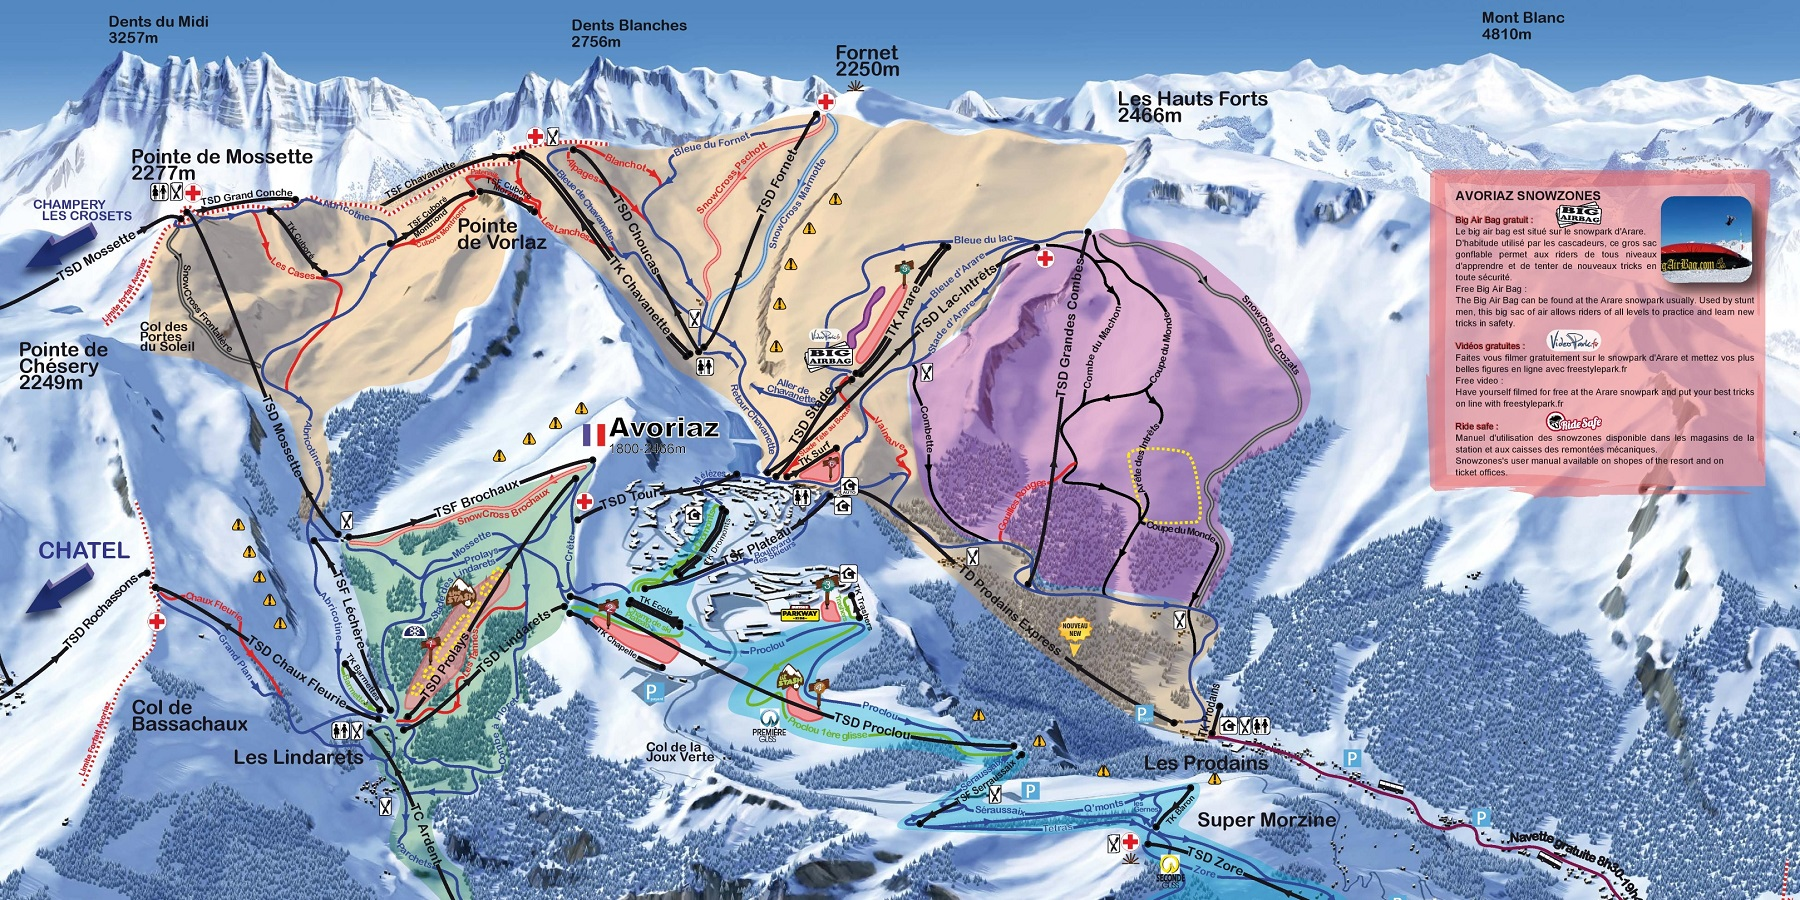 Схема трасс в Авориазе (Ski map Avoriaz)